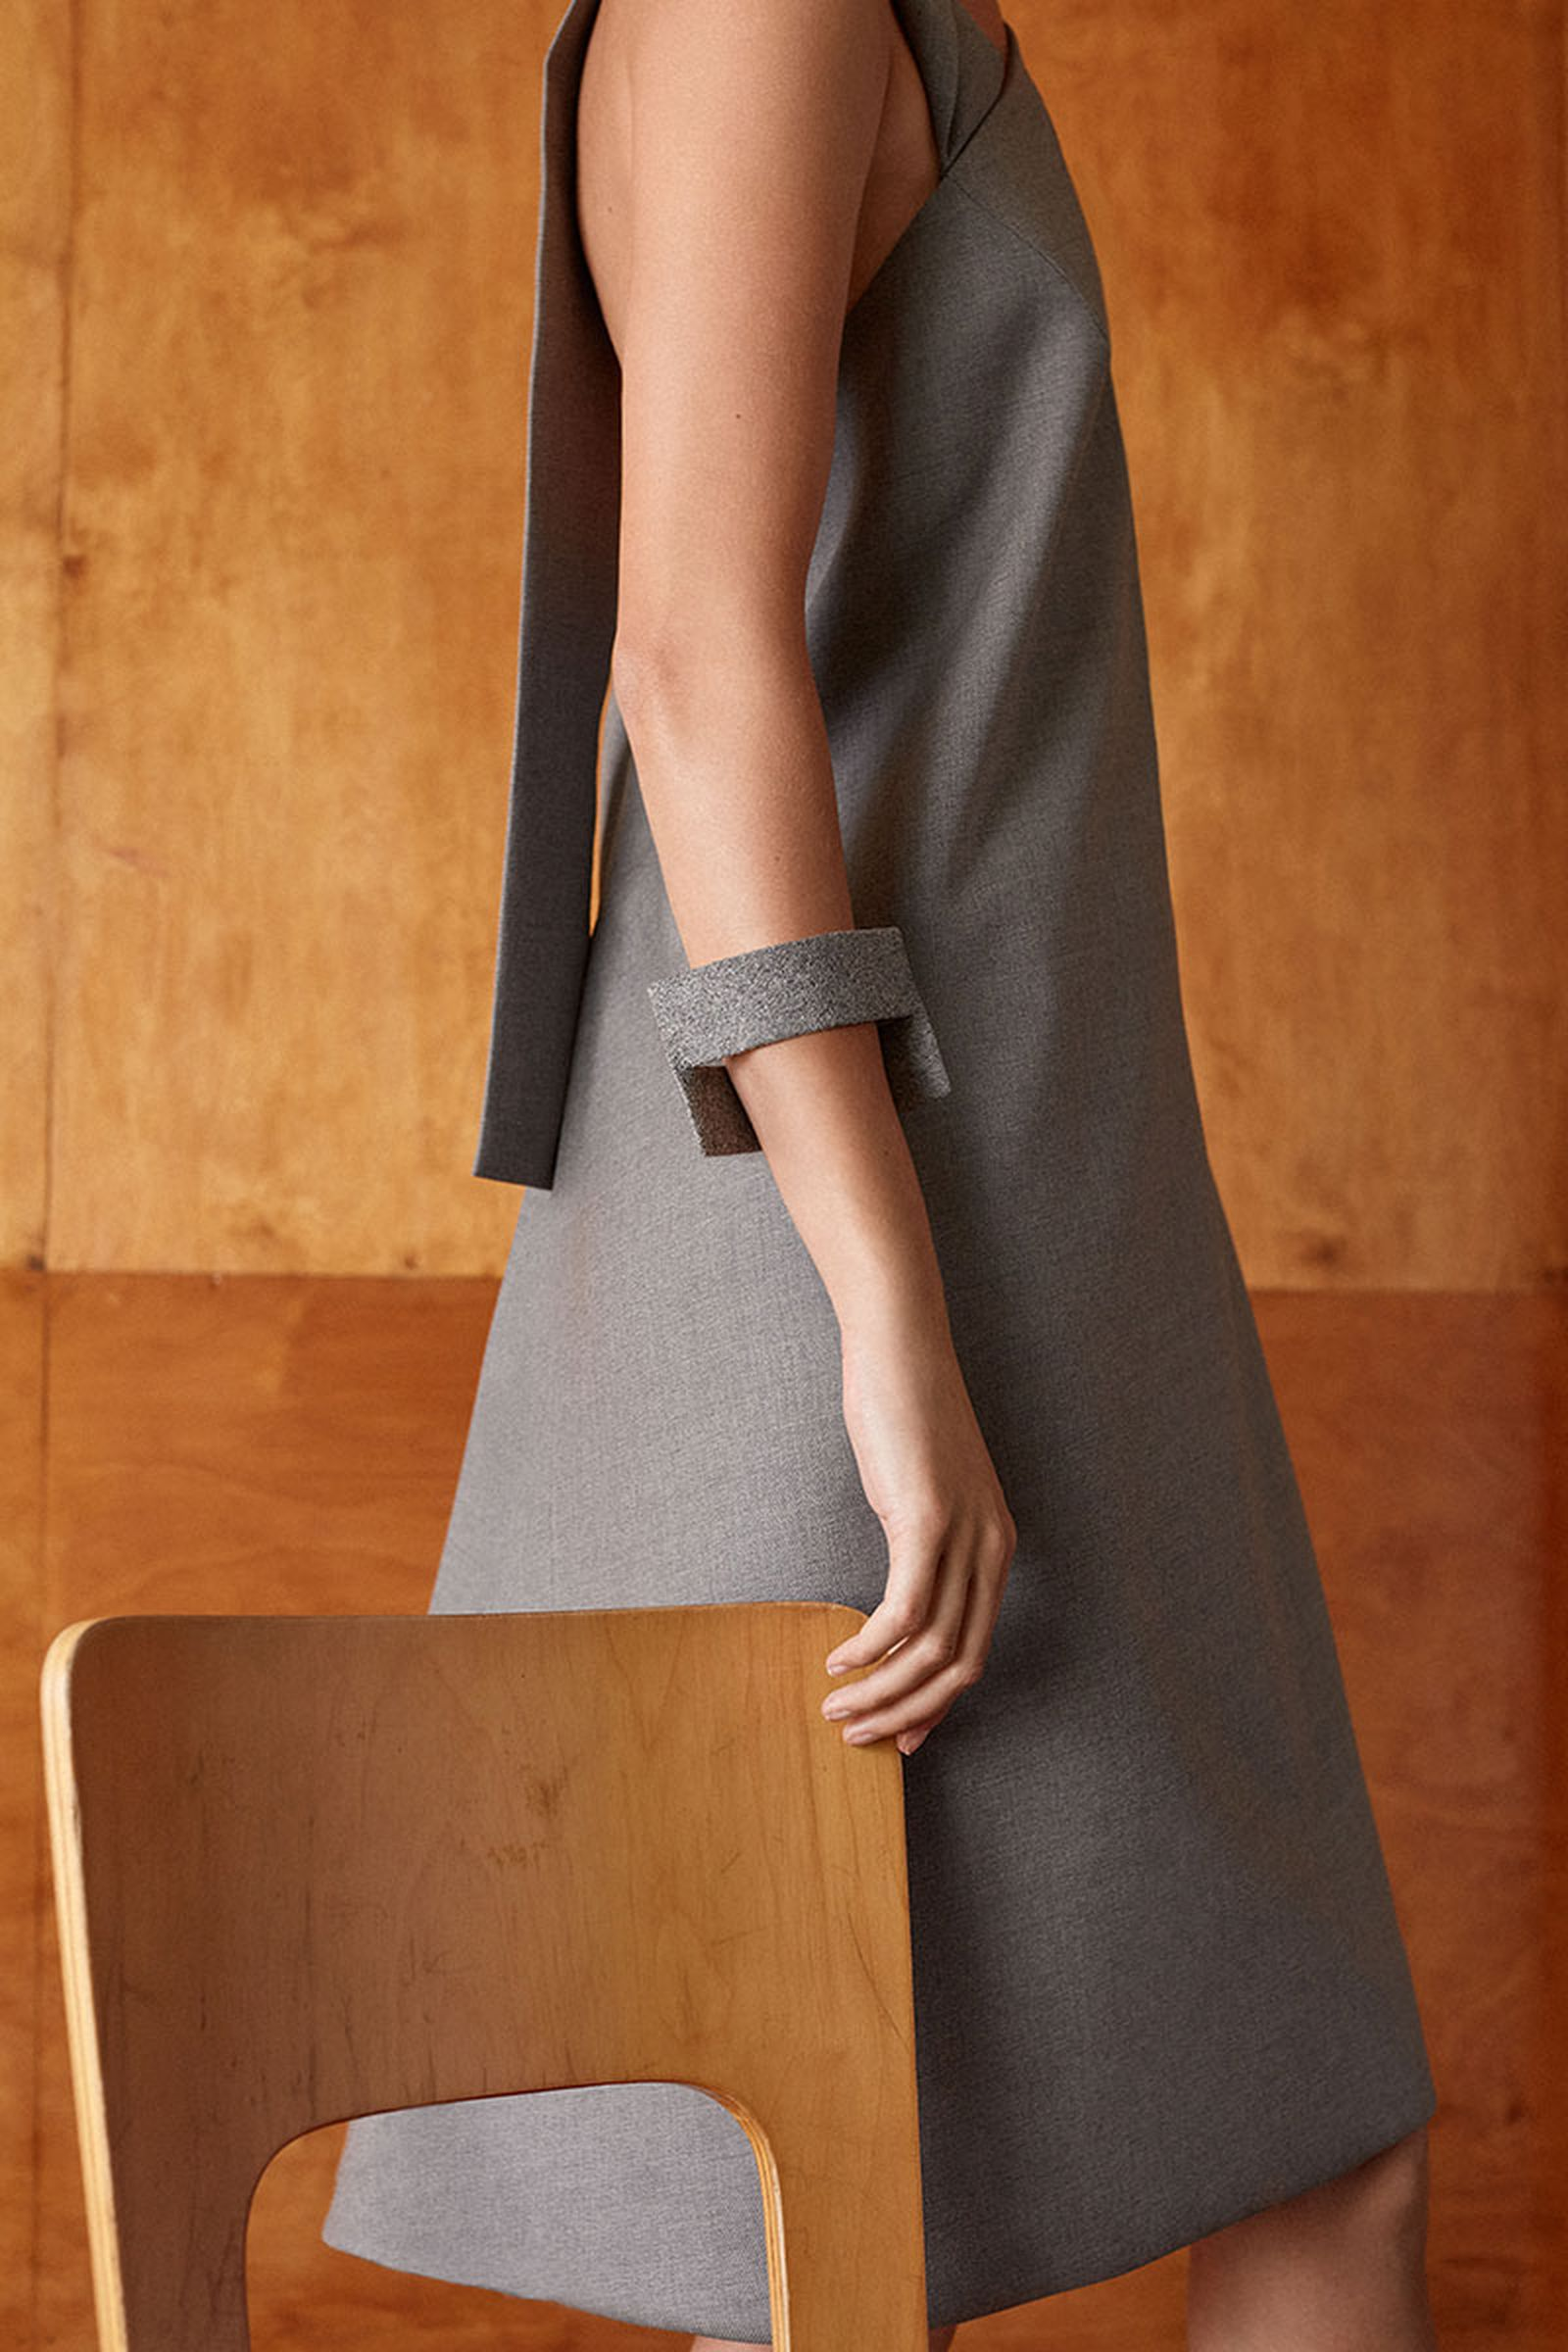 cos archive editions bauhaus collection